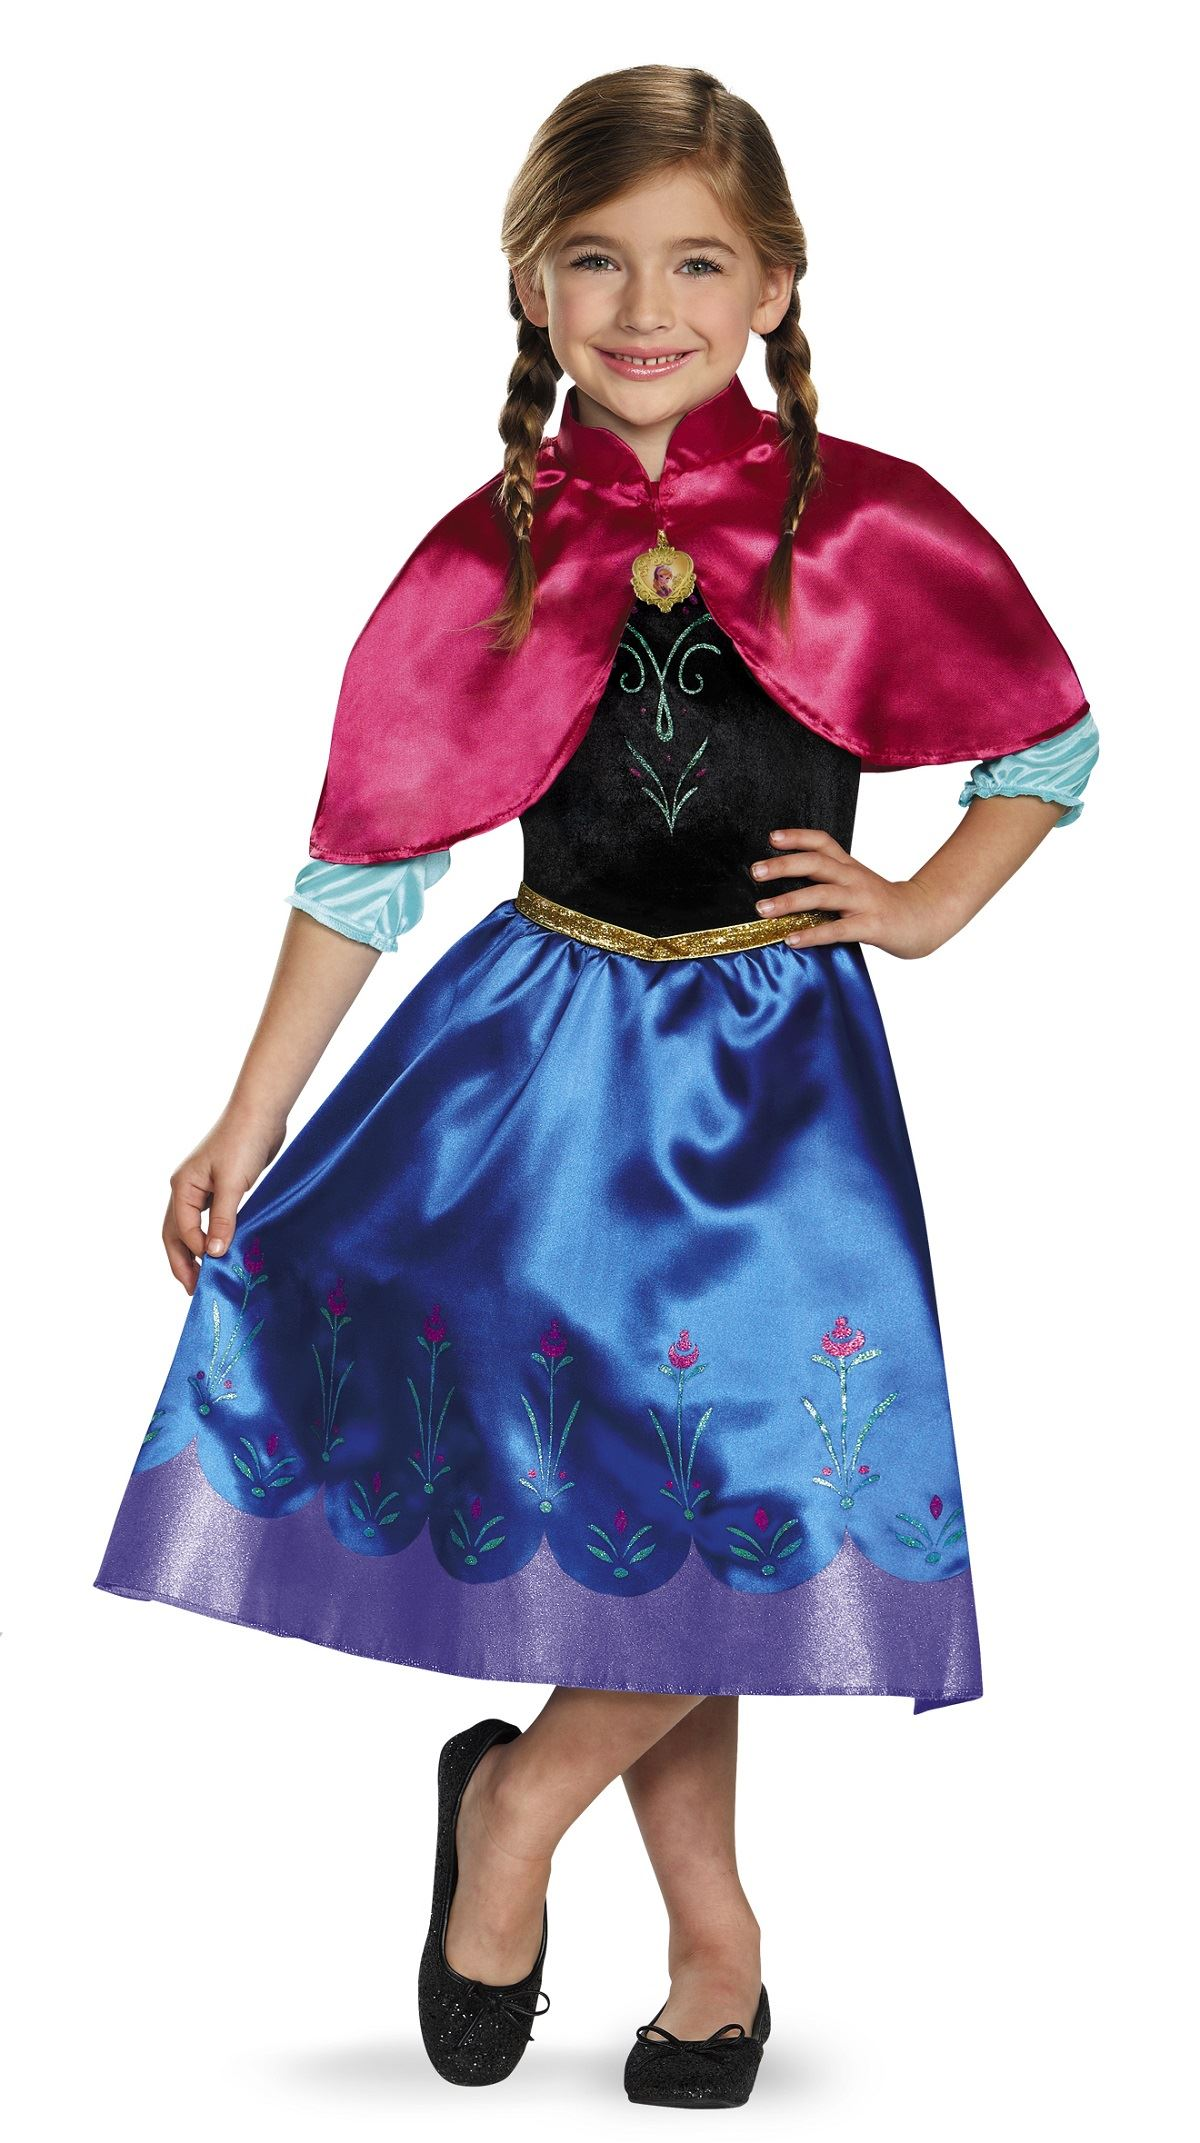 Kids Anna Disney Princess Girls Frozen Costume ...  sc 1 st  The Costume Land & Kids Anna Disney Princess Girls Frozen Costume | $20.99 | The ...